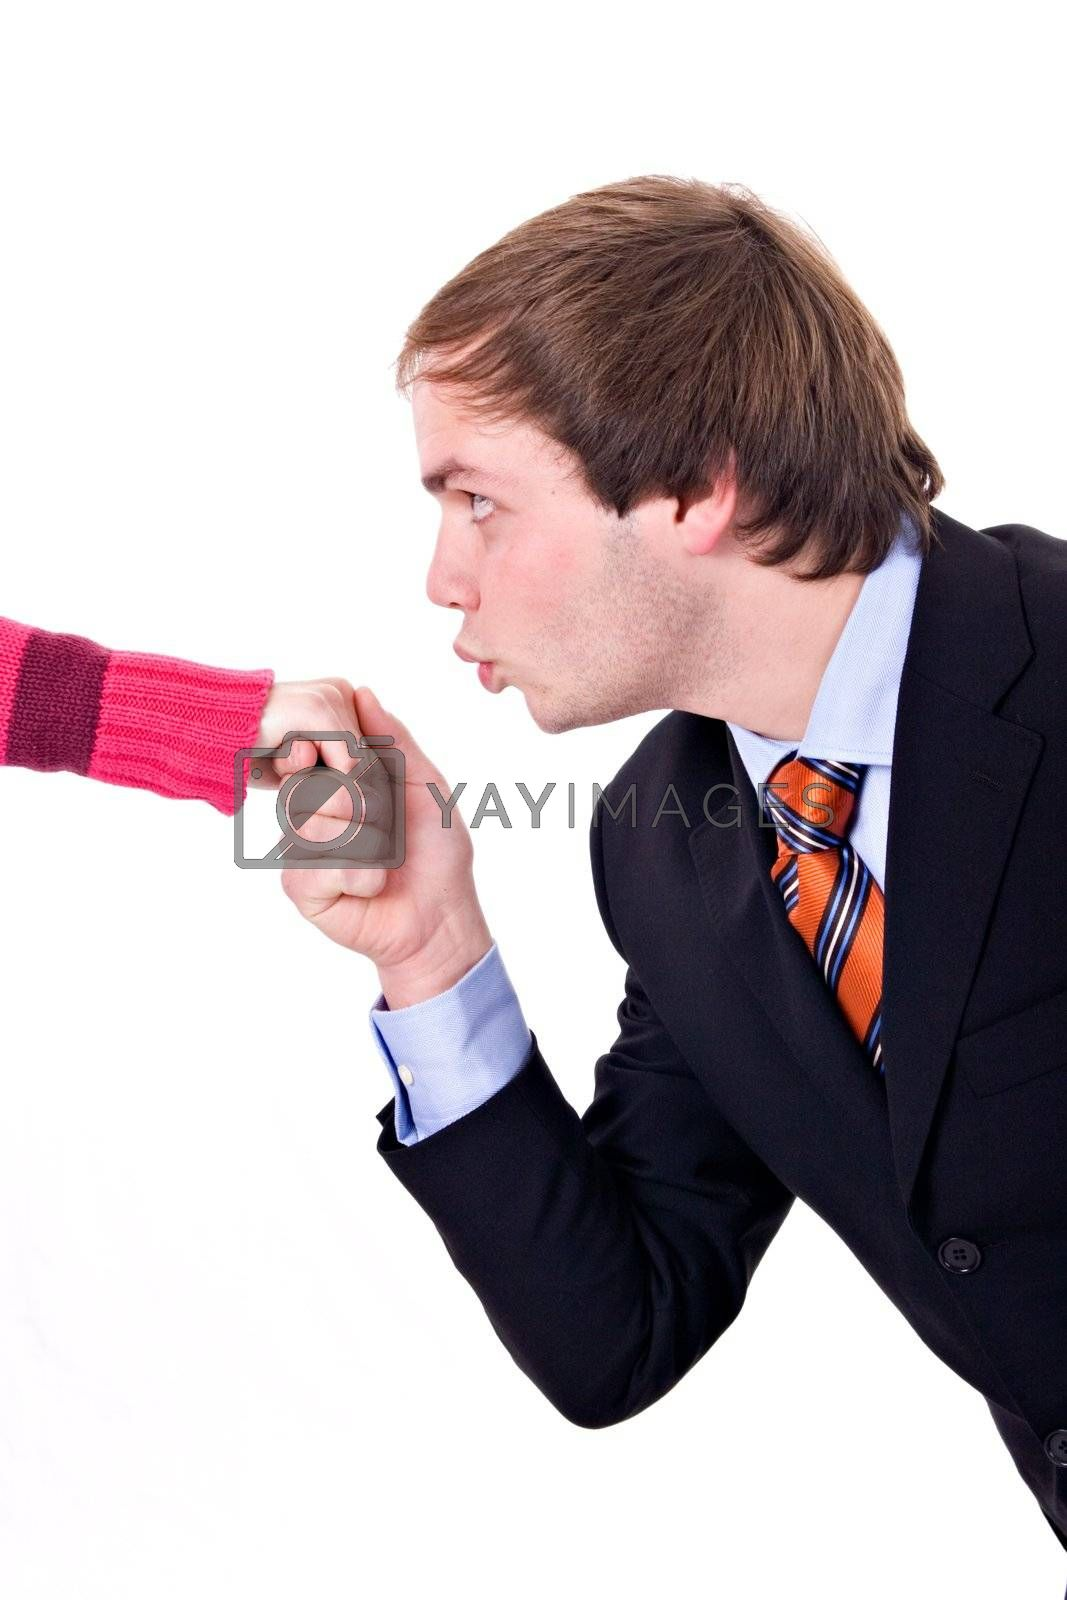 Young man with suit and tie, kissing a lady's hand.